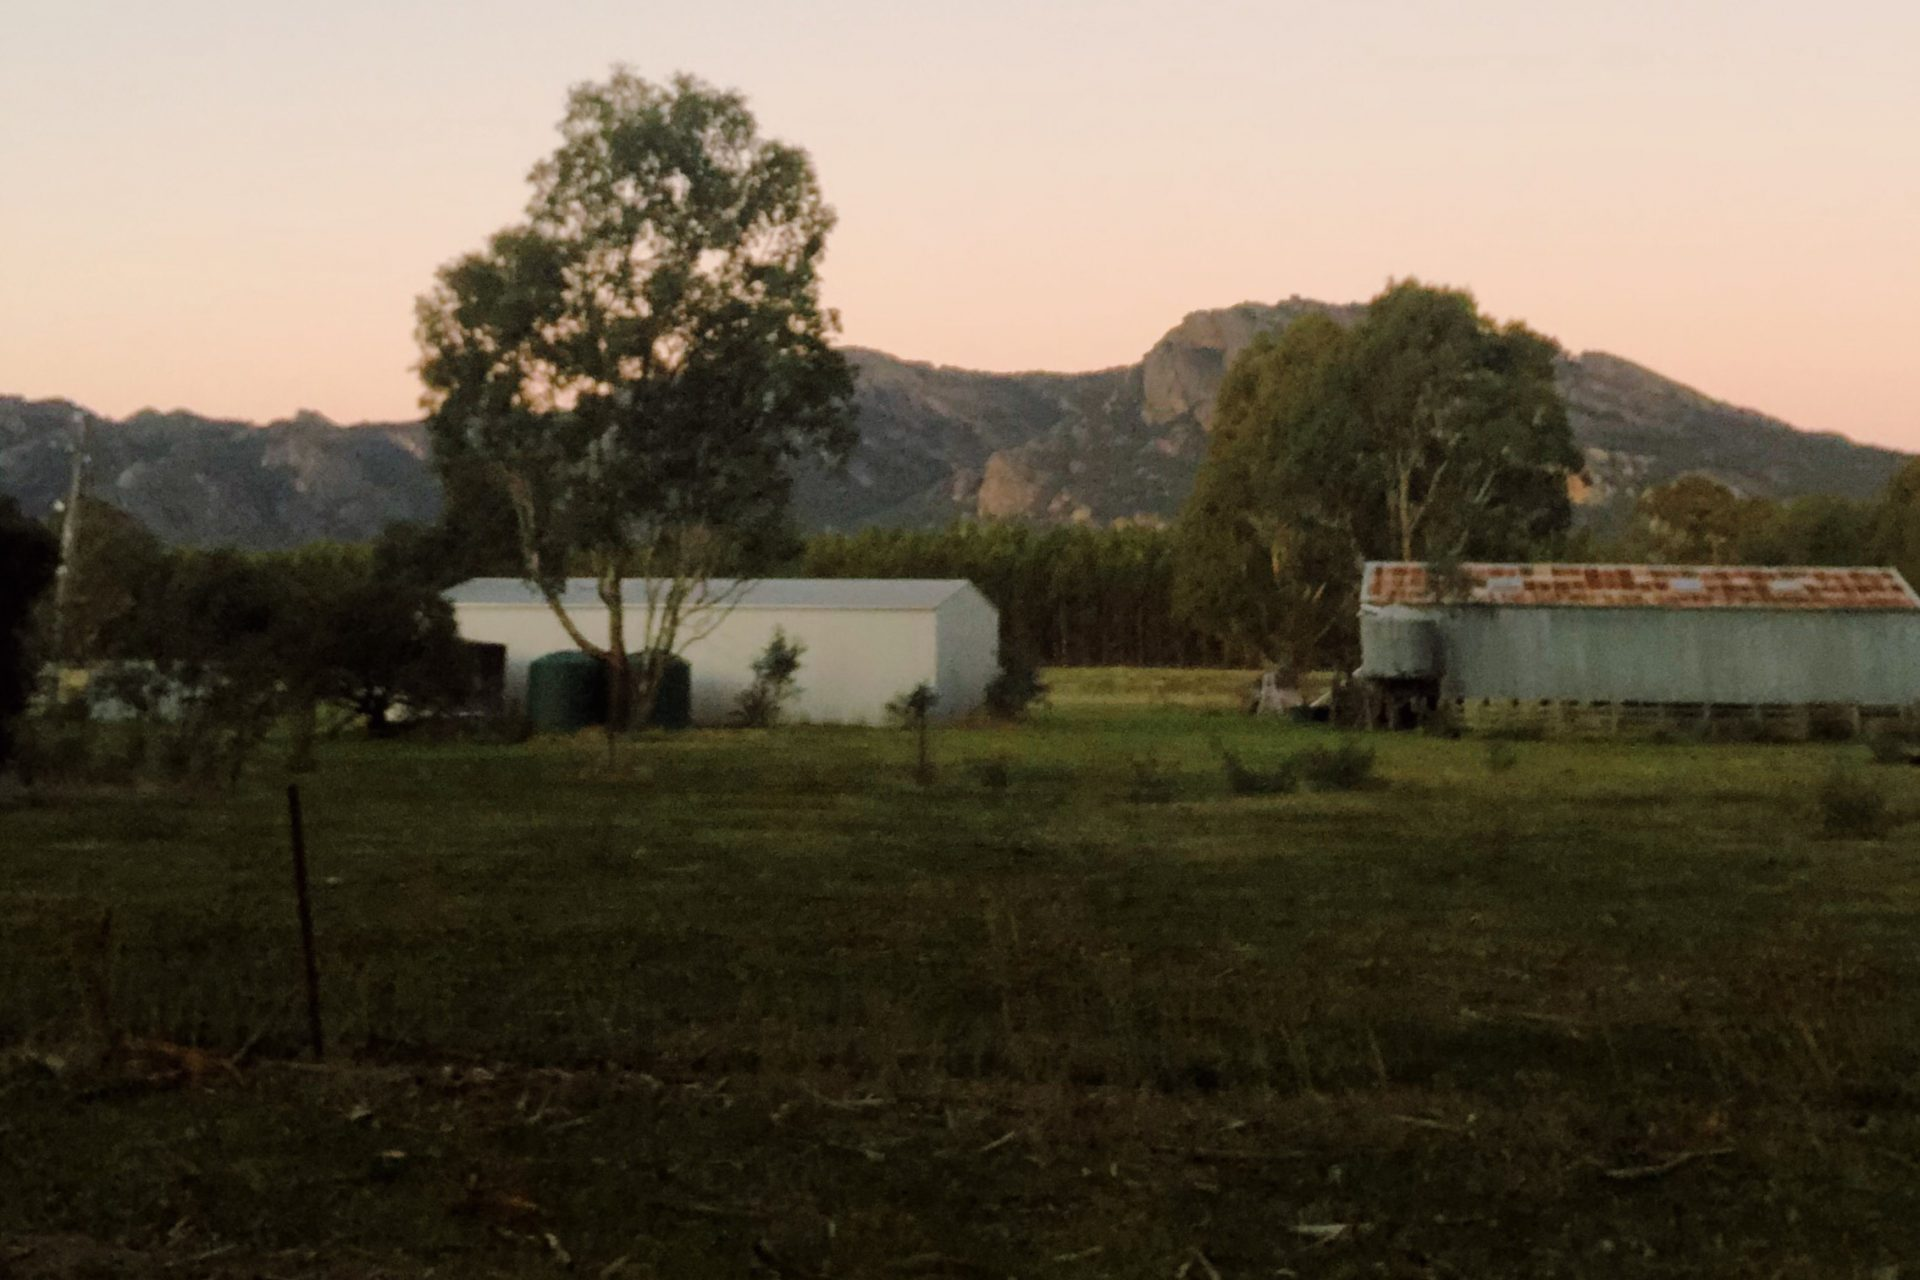 Two sheds in a green country yard with green trees and mountains in the background.